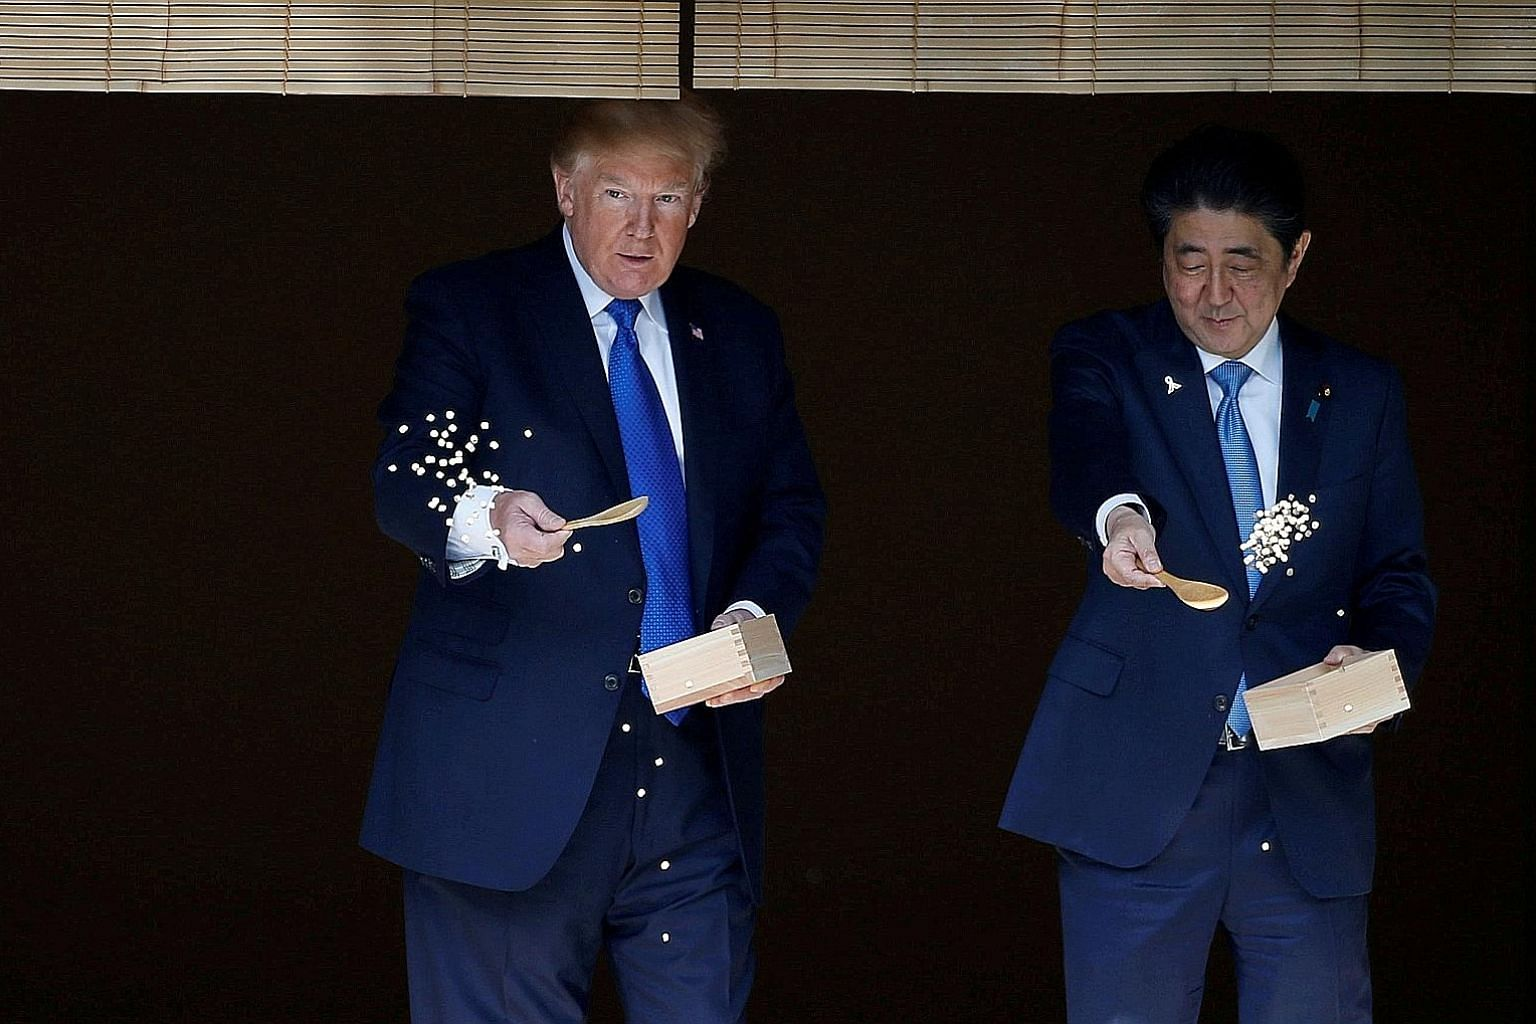 US President Donald Trump and Japanese Prime Minister Shinzo Abe feeding carp before their working lunch at Akasaka Palace in Tokyo last November. The Japanese government is taking unprecedented steps to wow Mr Trump upon his arrival in Tokyo on Satu